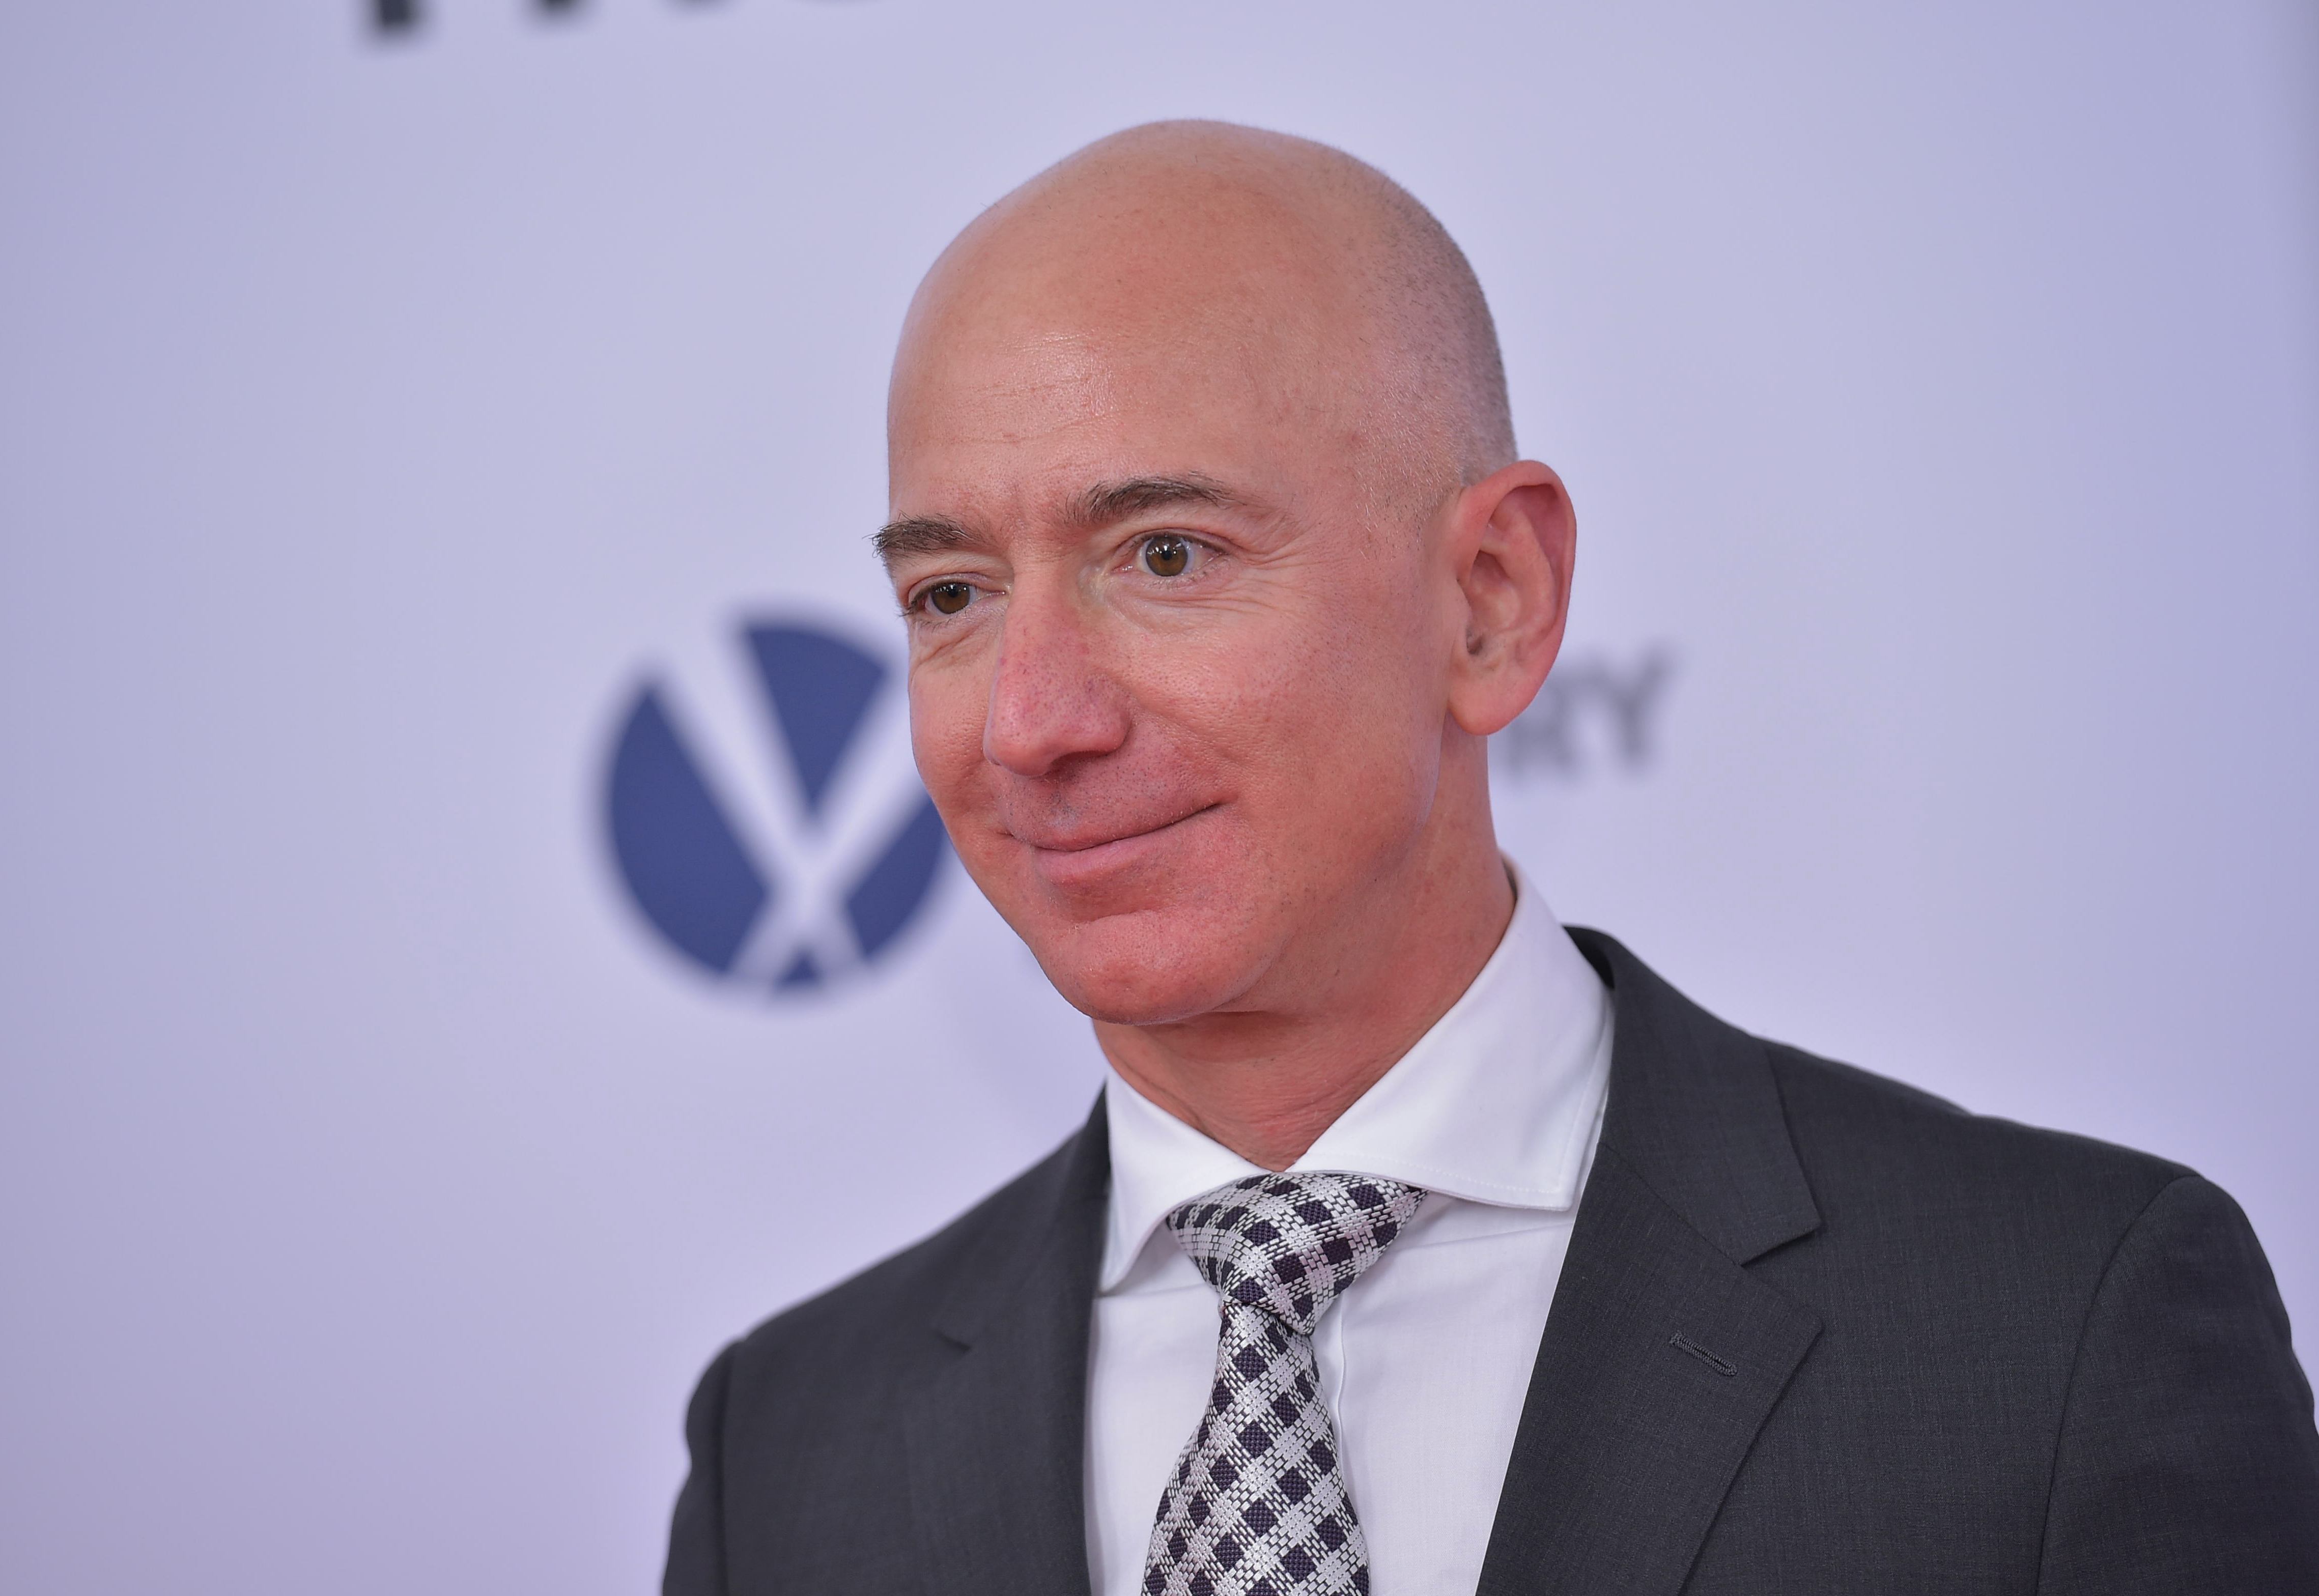 Amazon CEO Jeff Bezos stands for photos outside the premiere of 'The Post' on December 14, 2017, in Washington, DC.